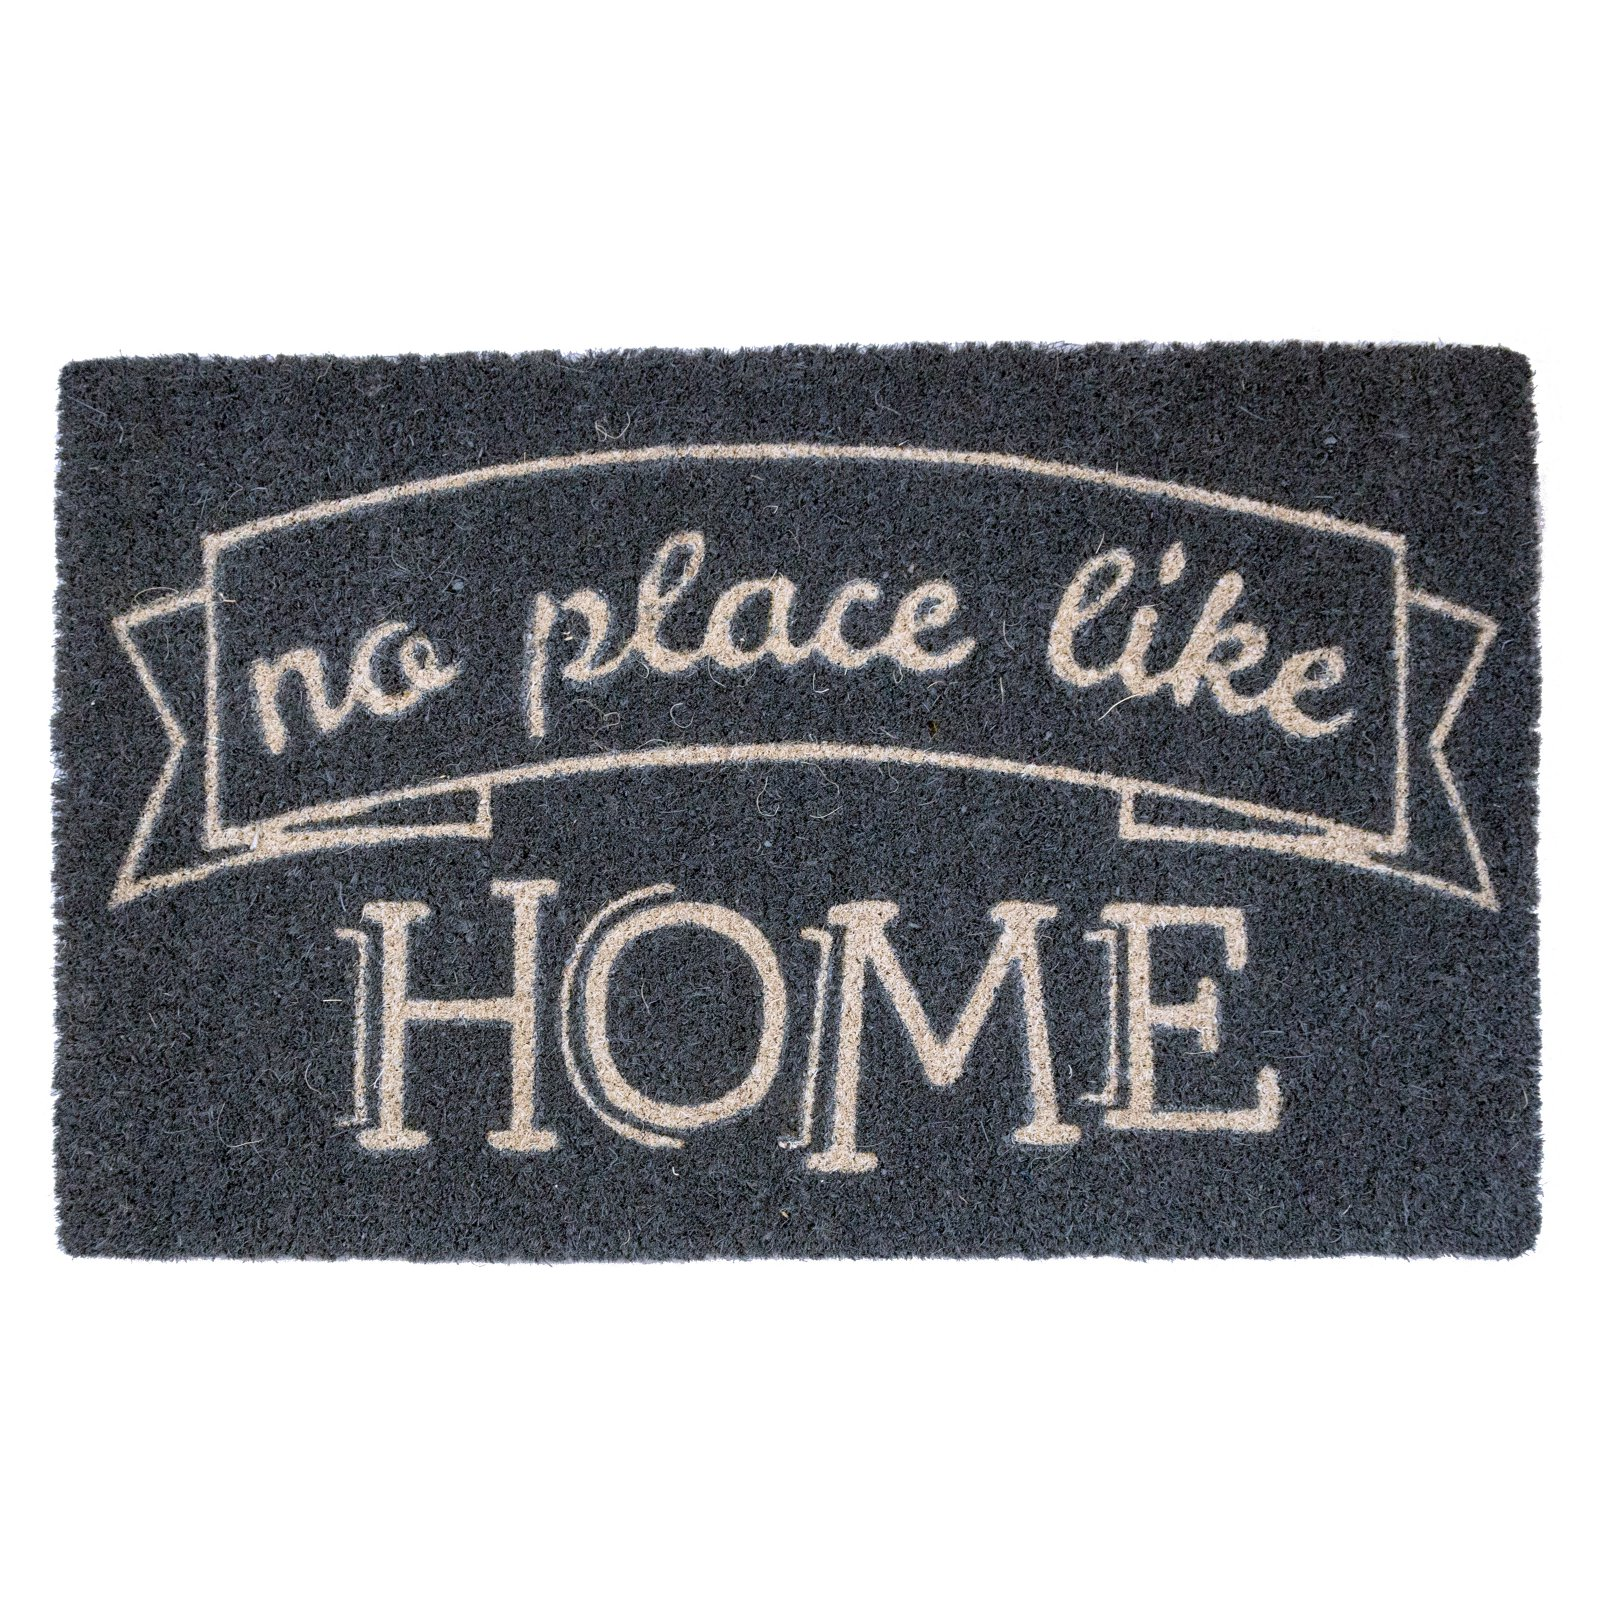 Entryways Like Home Non Slip Coir Door Mat